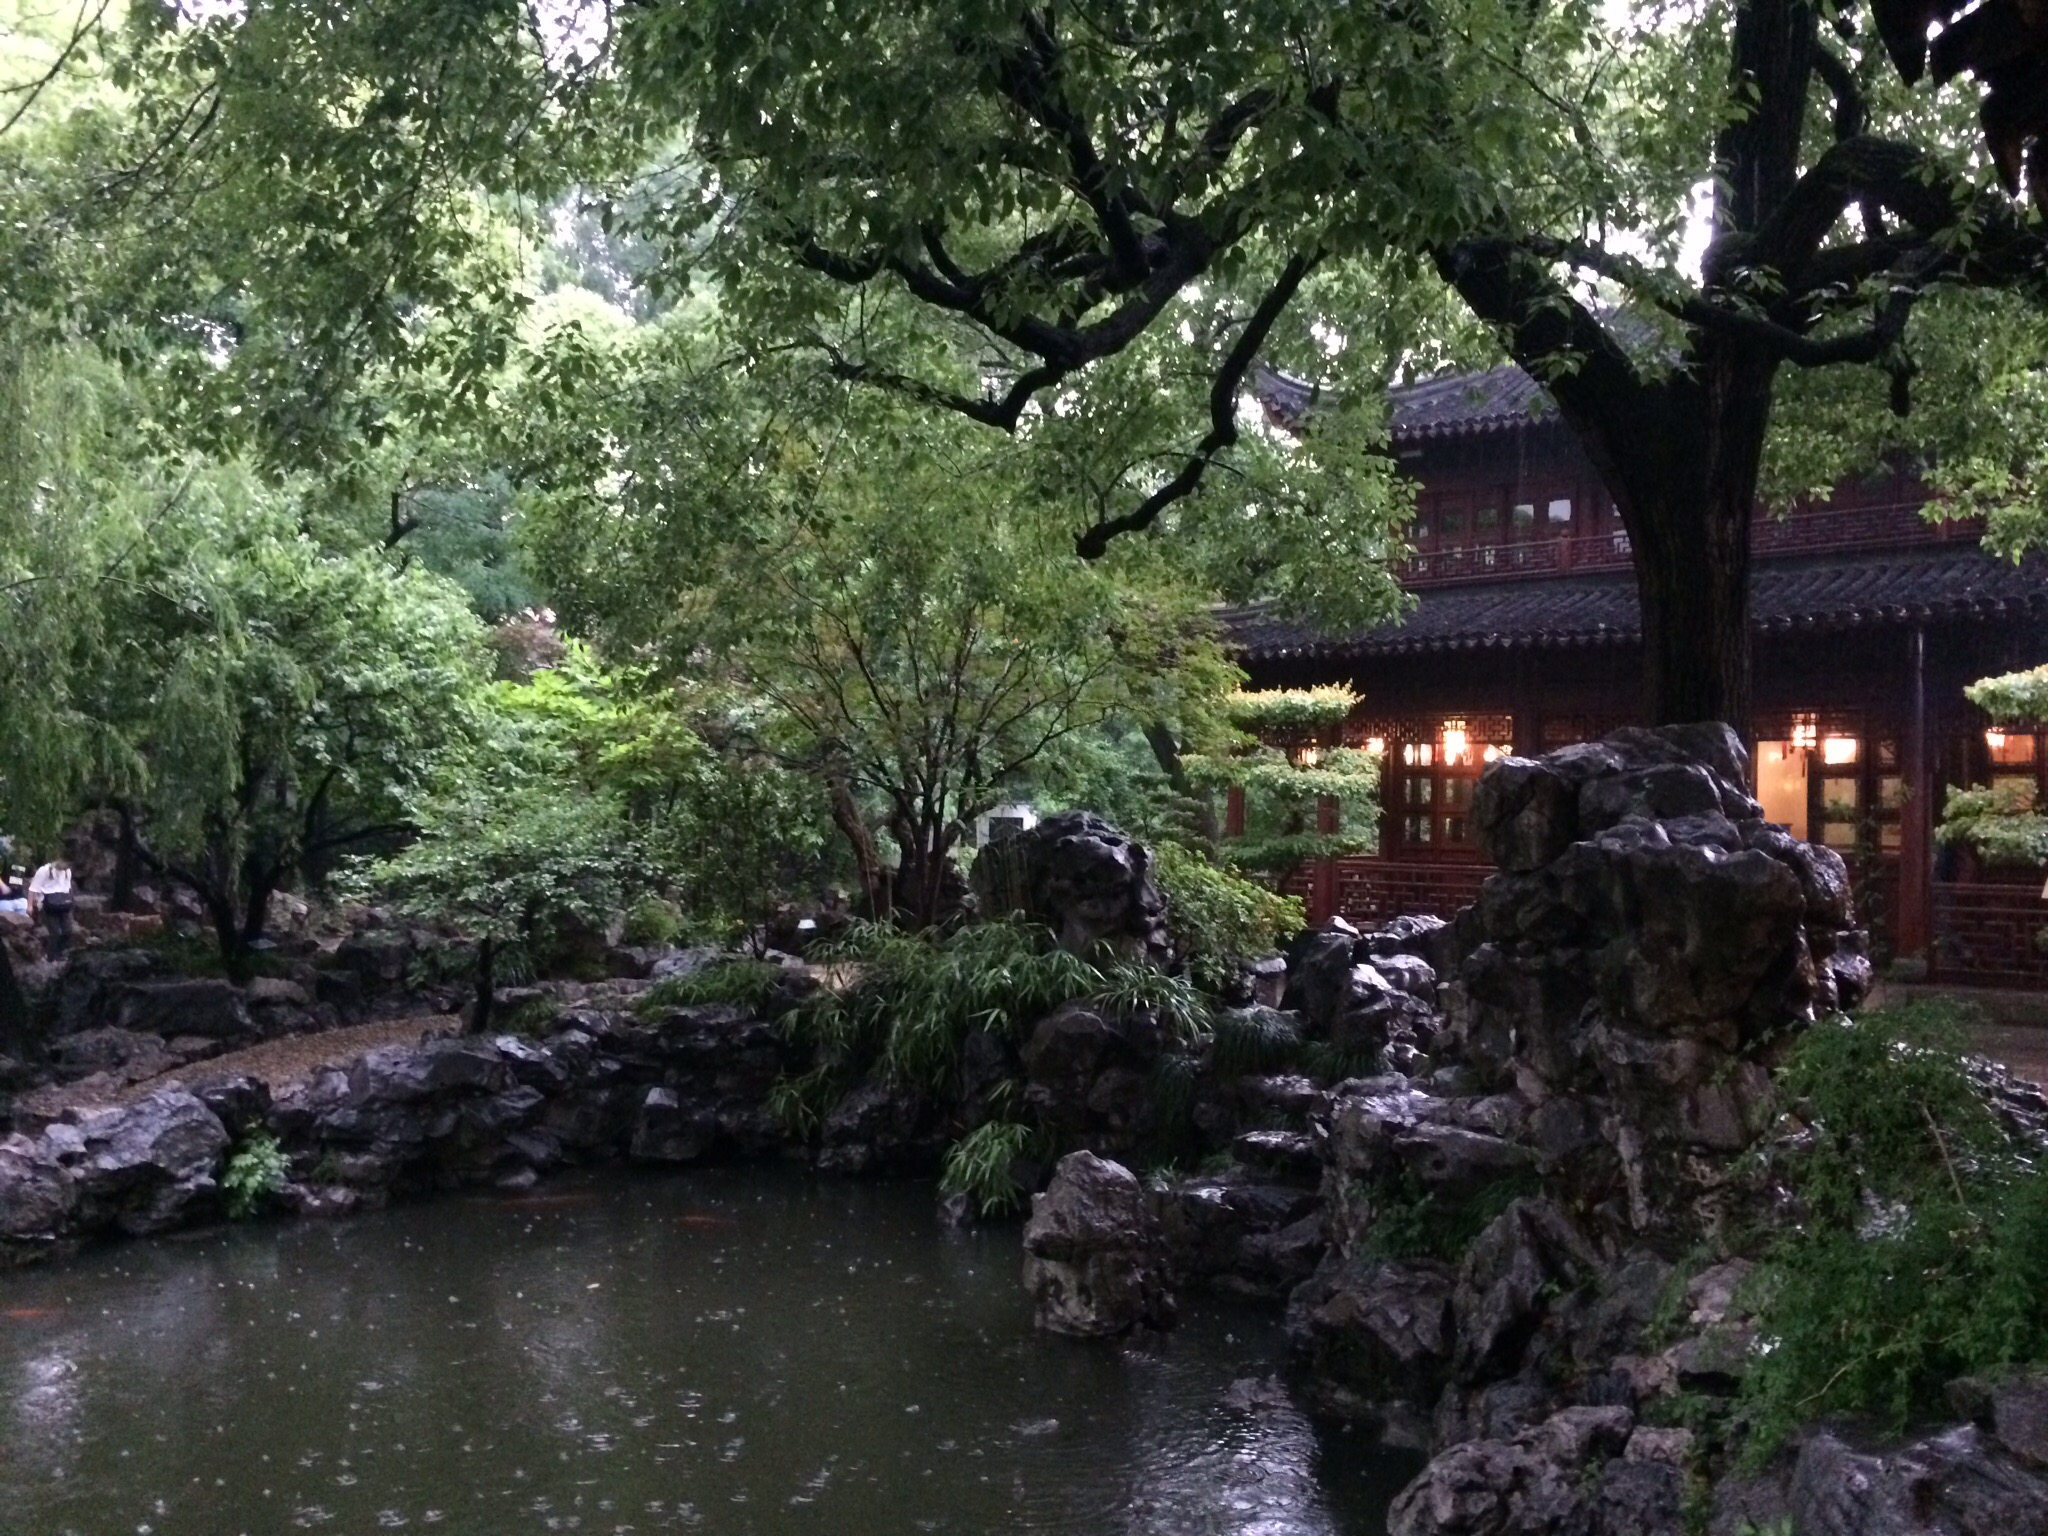 You can kind of see the rain drops falling in the koi pond. Doesn't even compare to the lighting & thunderstorm that came next.